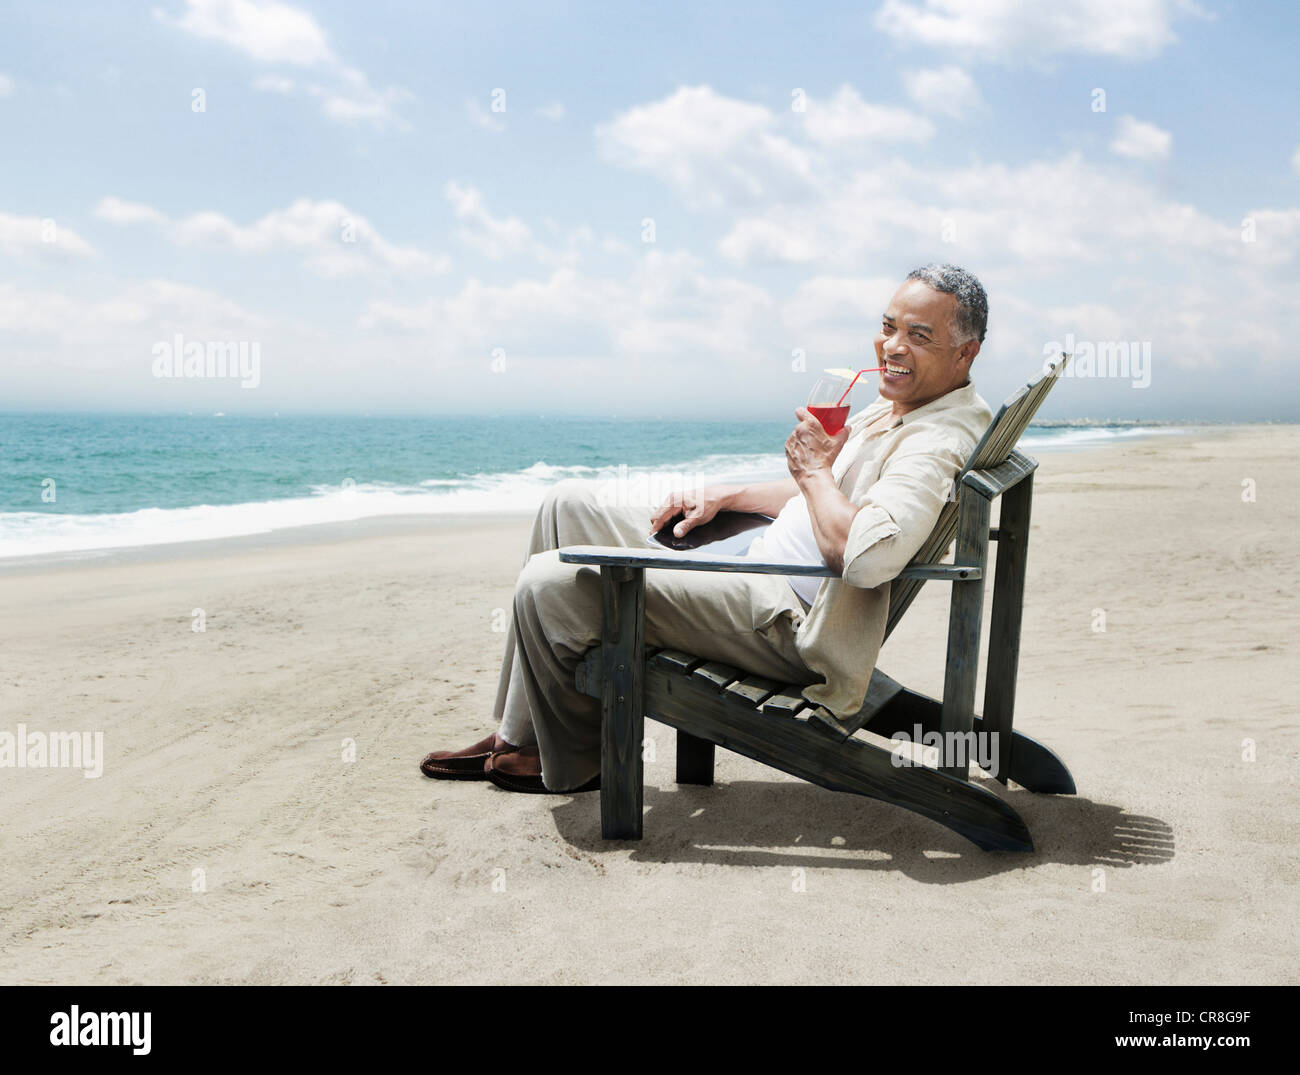 Tourist Sitting In Beach Chair High Resolution Stock Photography And Images Alamy